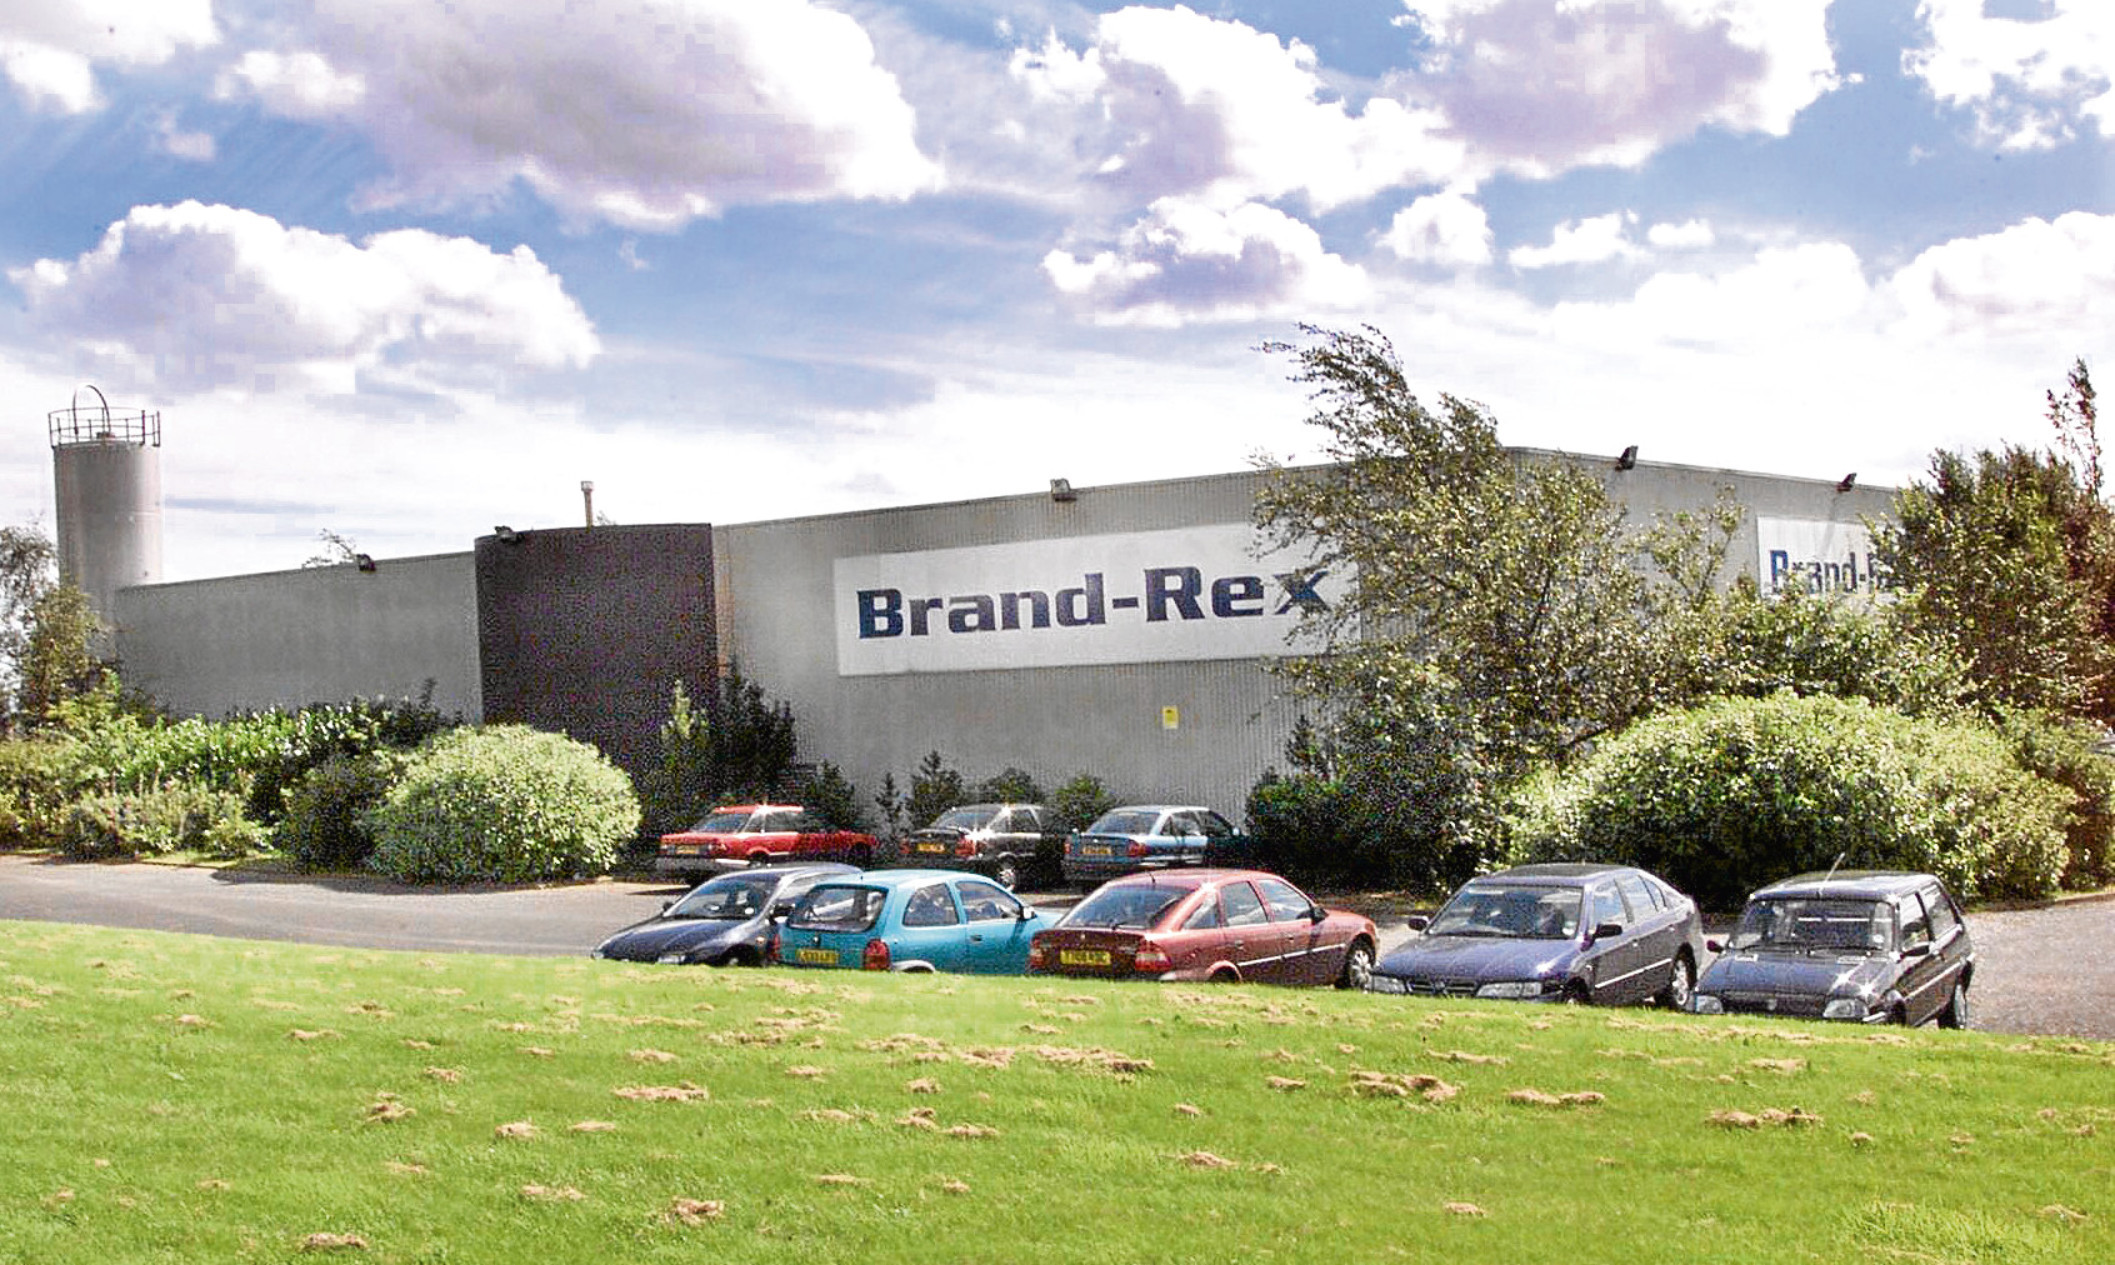 The Brand-Rex site in Glenrothes